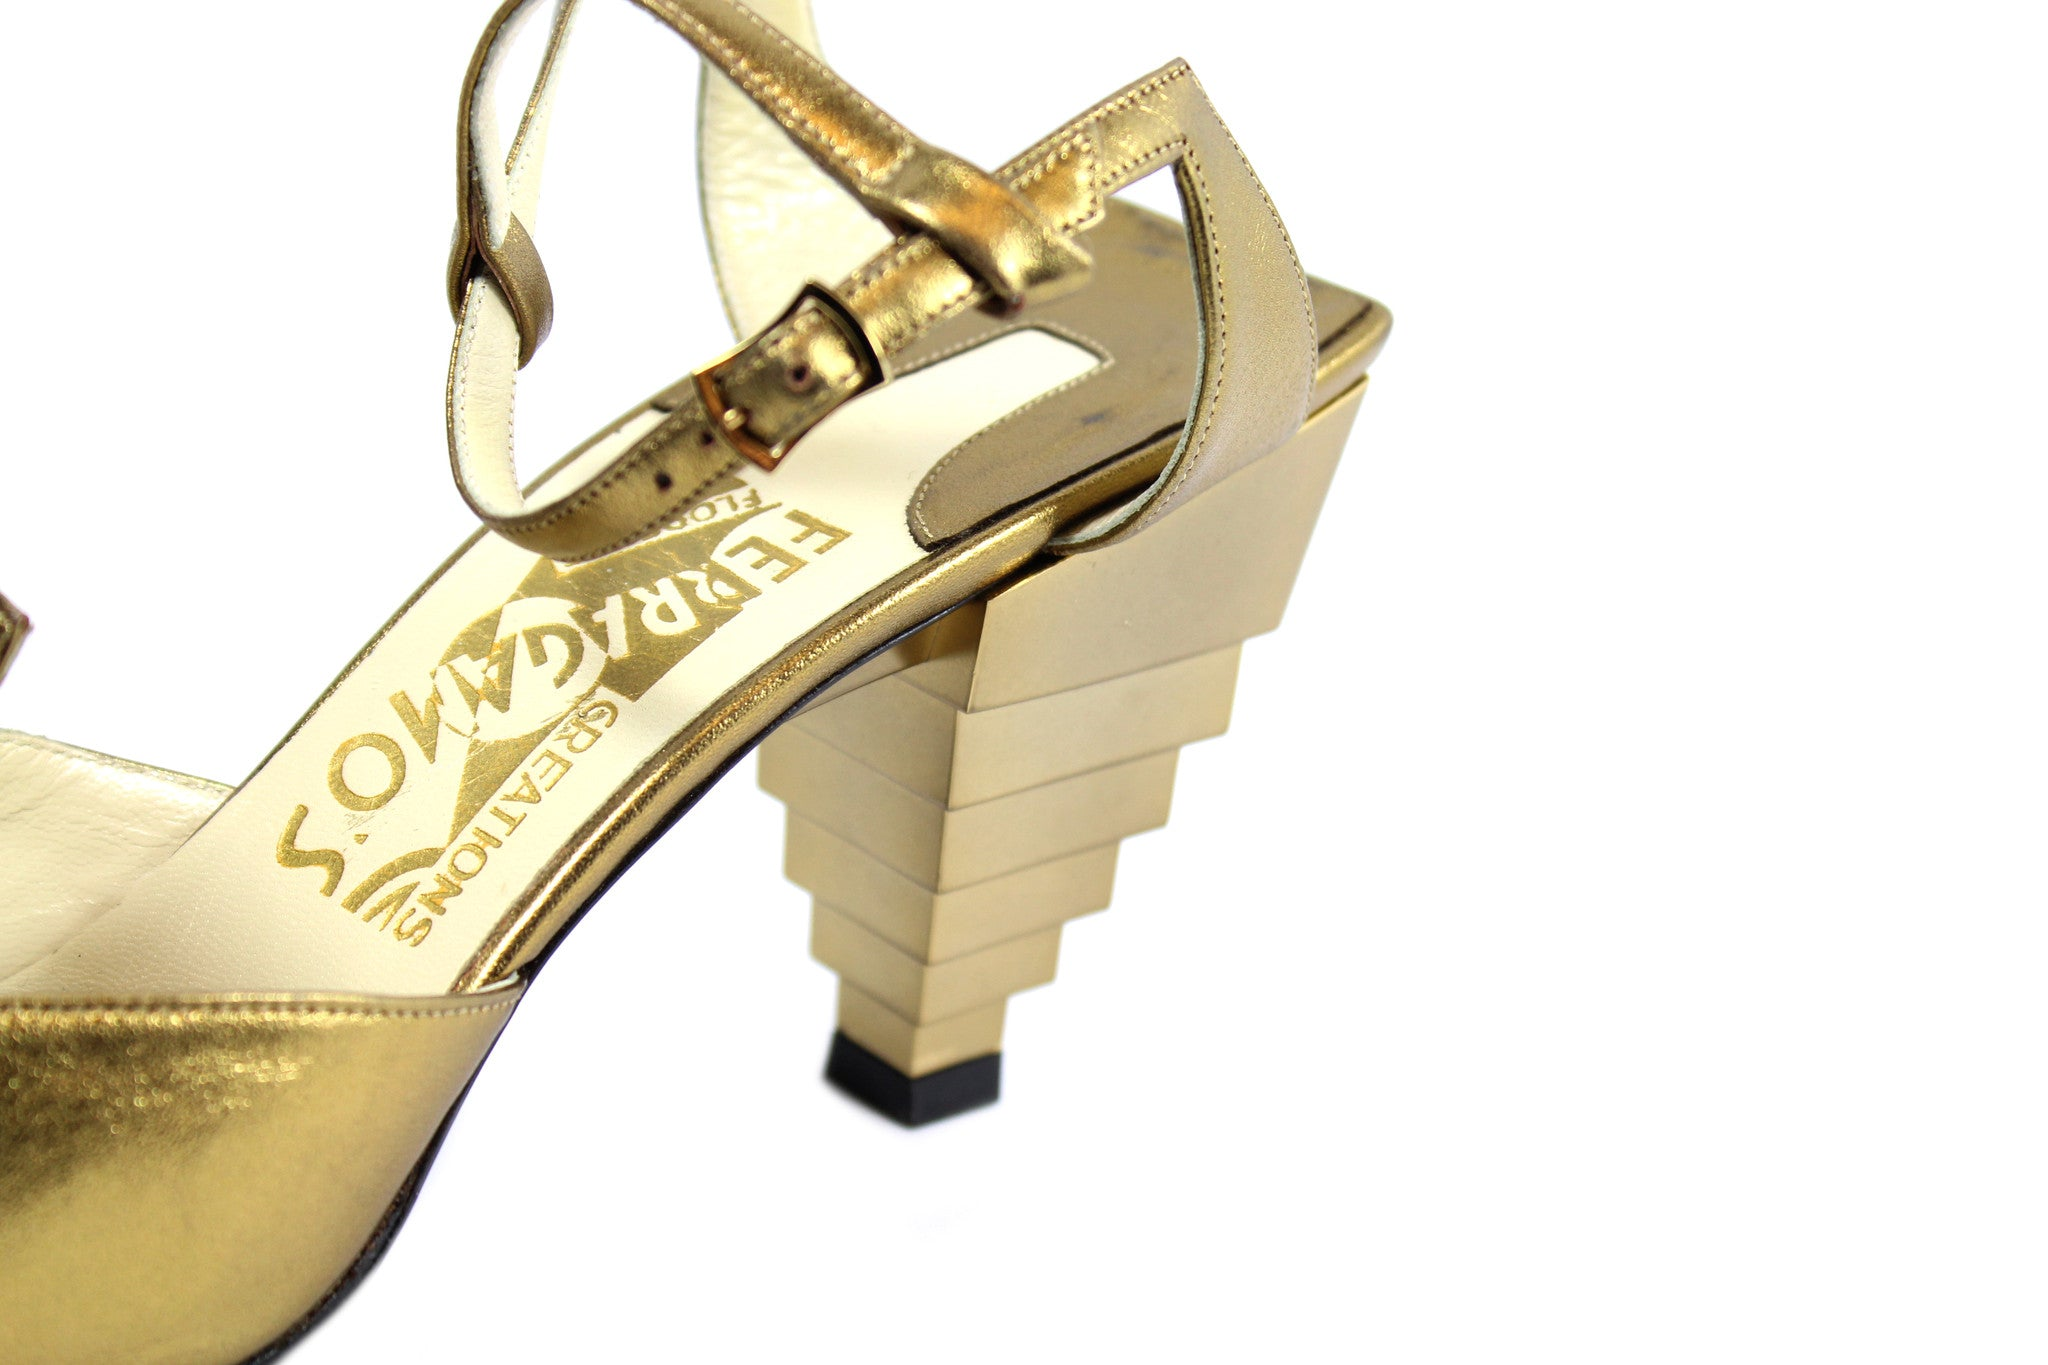 Salvatore Ferragamo 1930s Gold Pyramid Sandals (Size 6) - Encore Consignment - 6